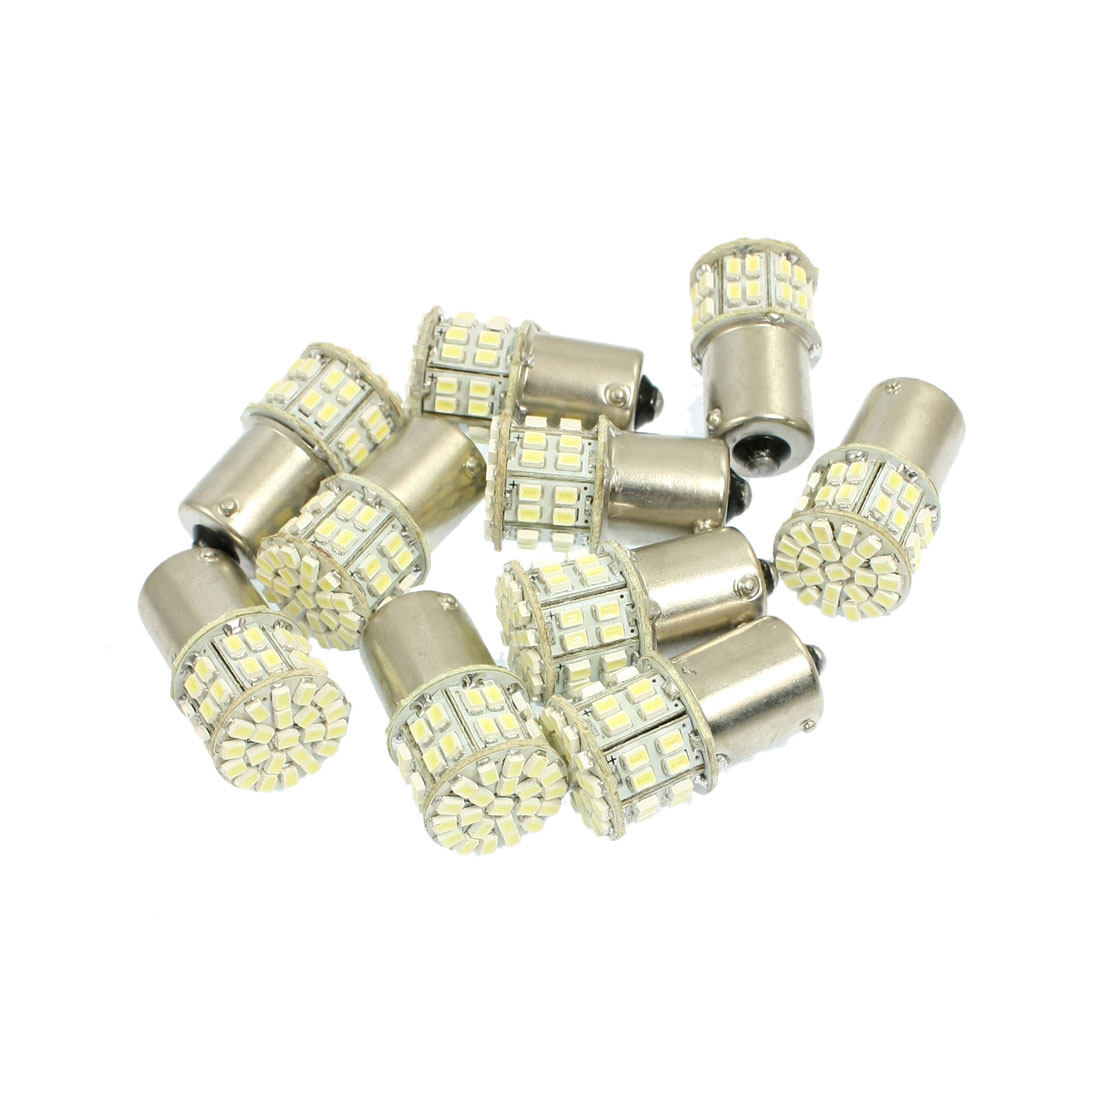 10 Pcs Car 1156 BA15S White 1206 SMD 50 LED Bulb Tail Turn Signal Light Lamp